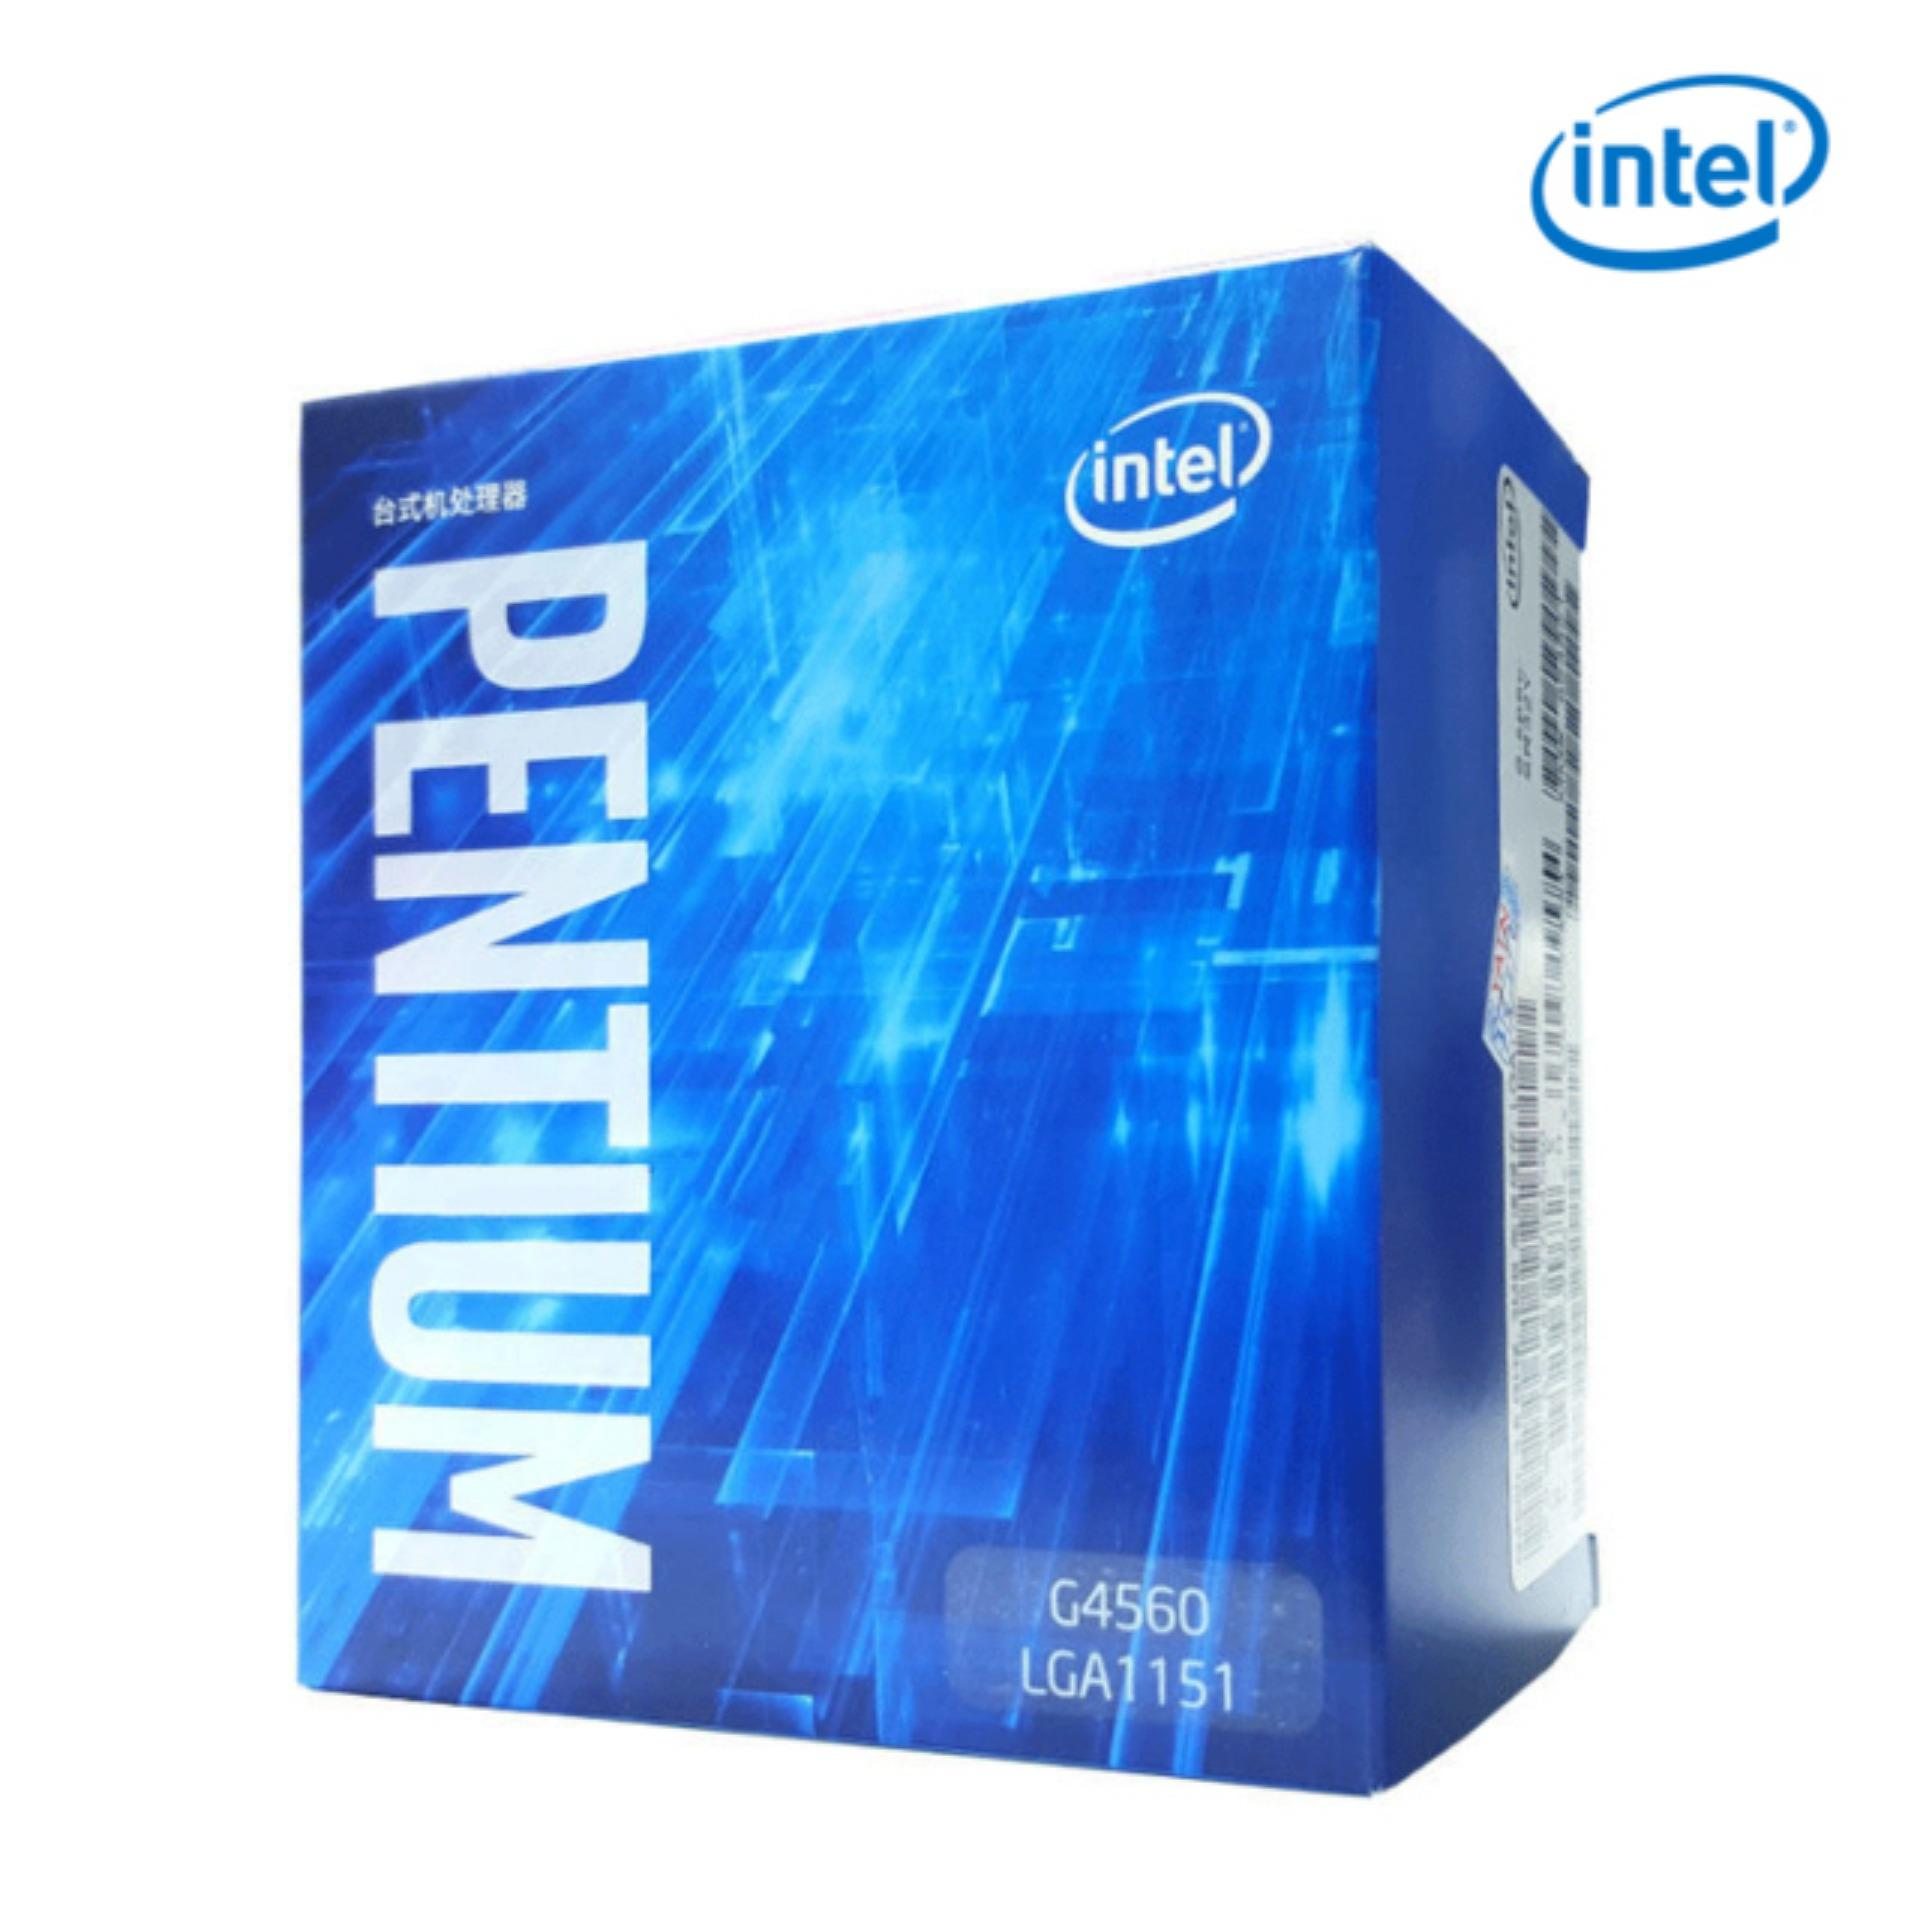 Intel Philippines Intel Price List Intel Computer Processor For